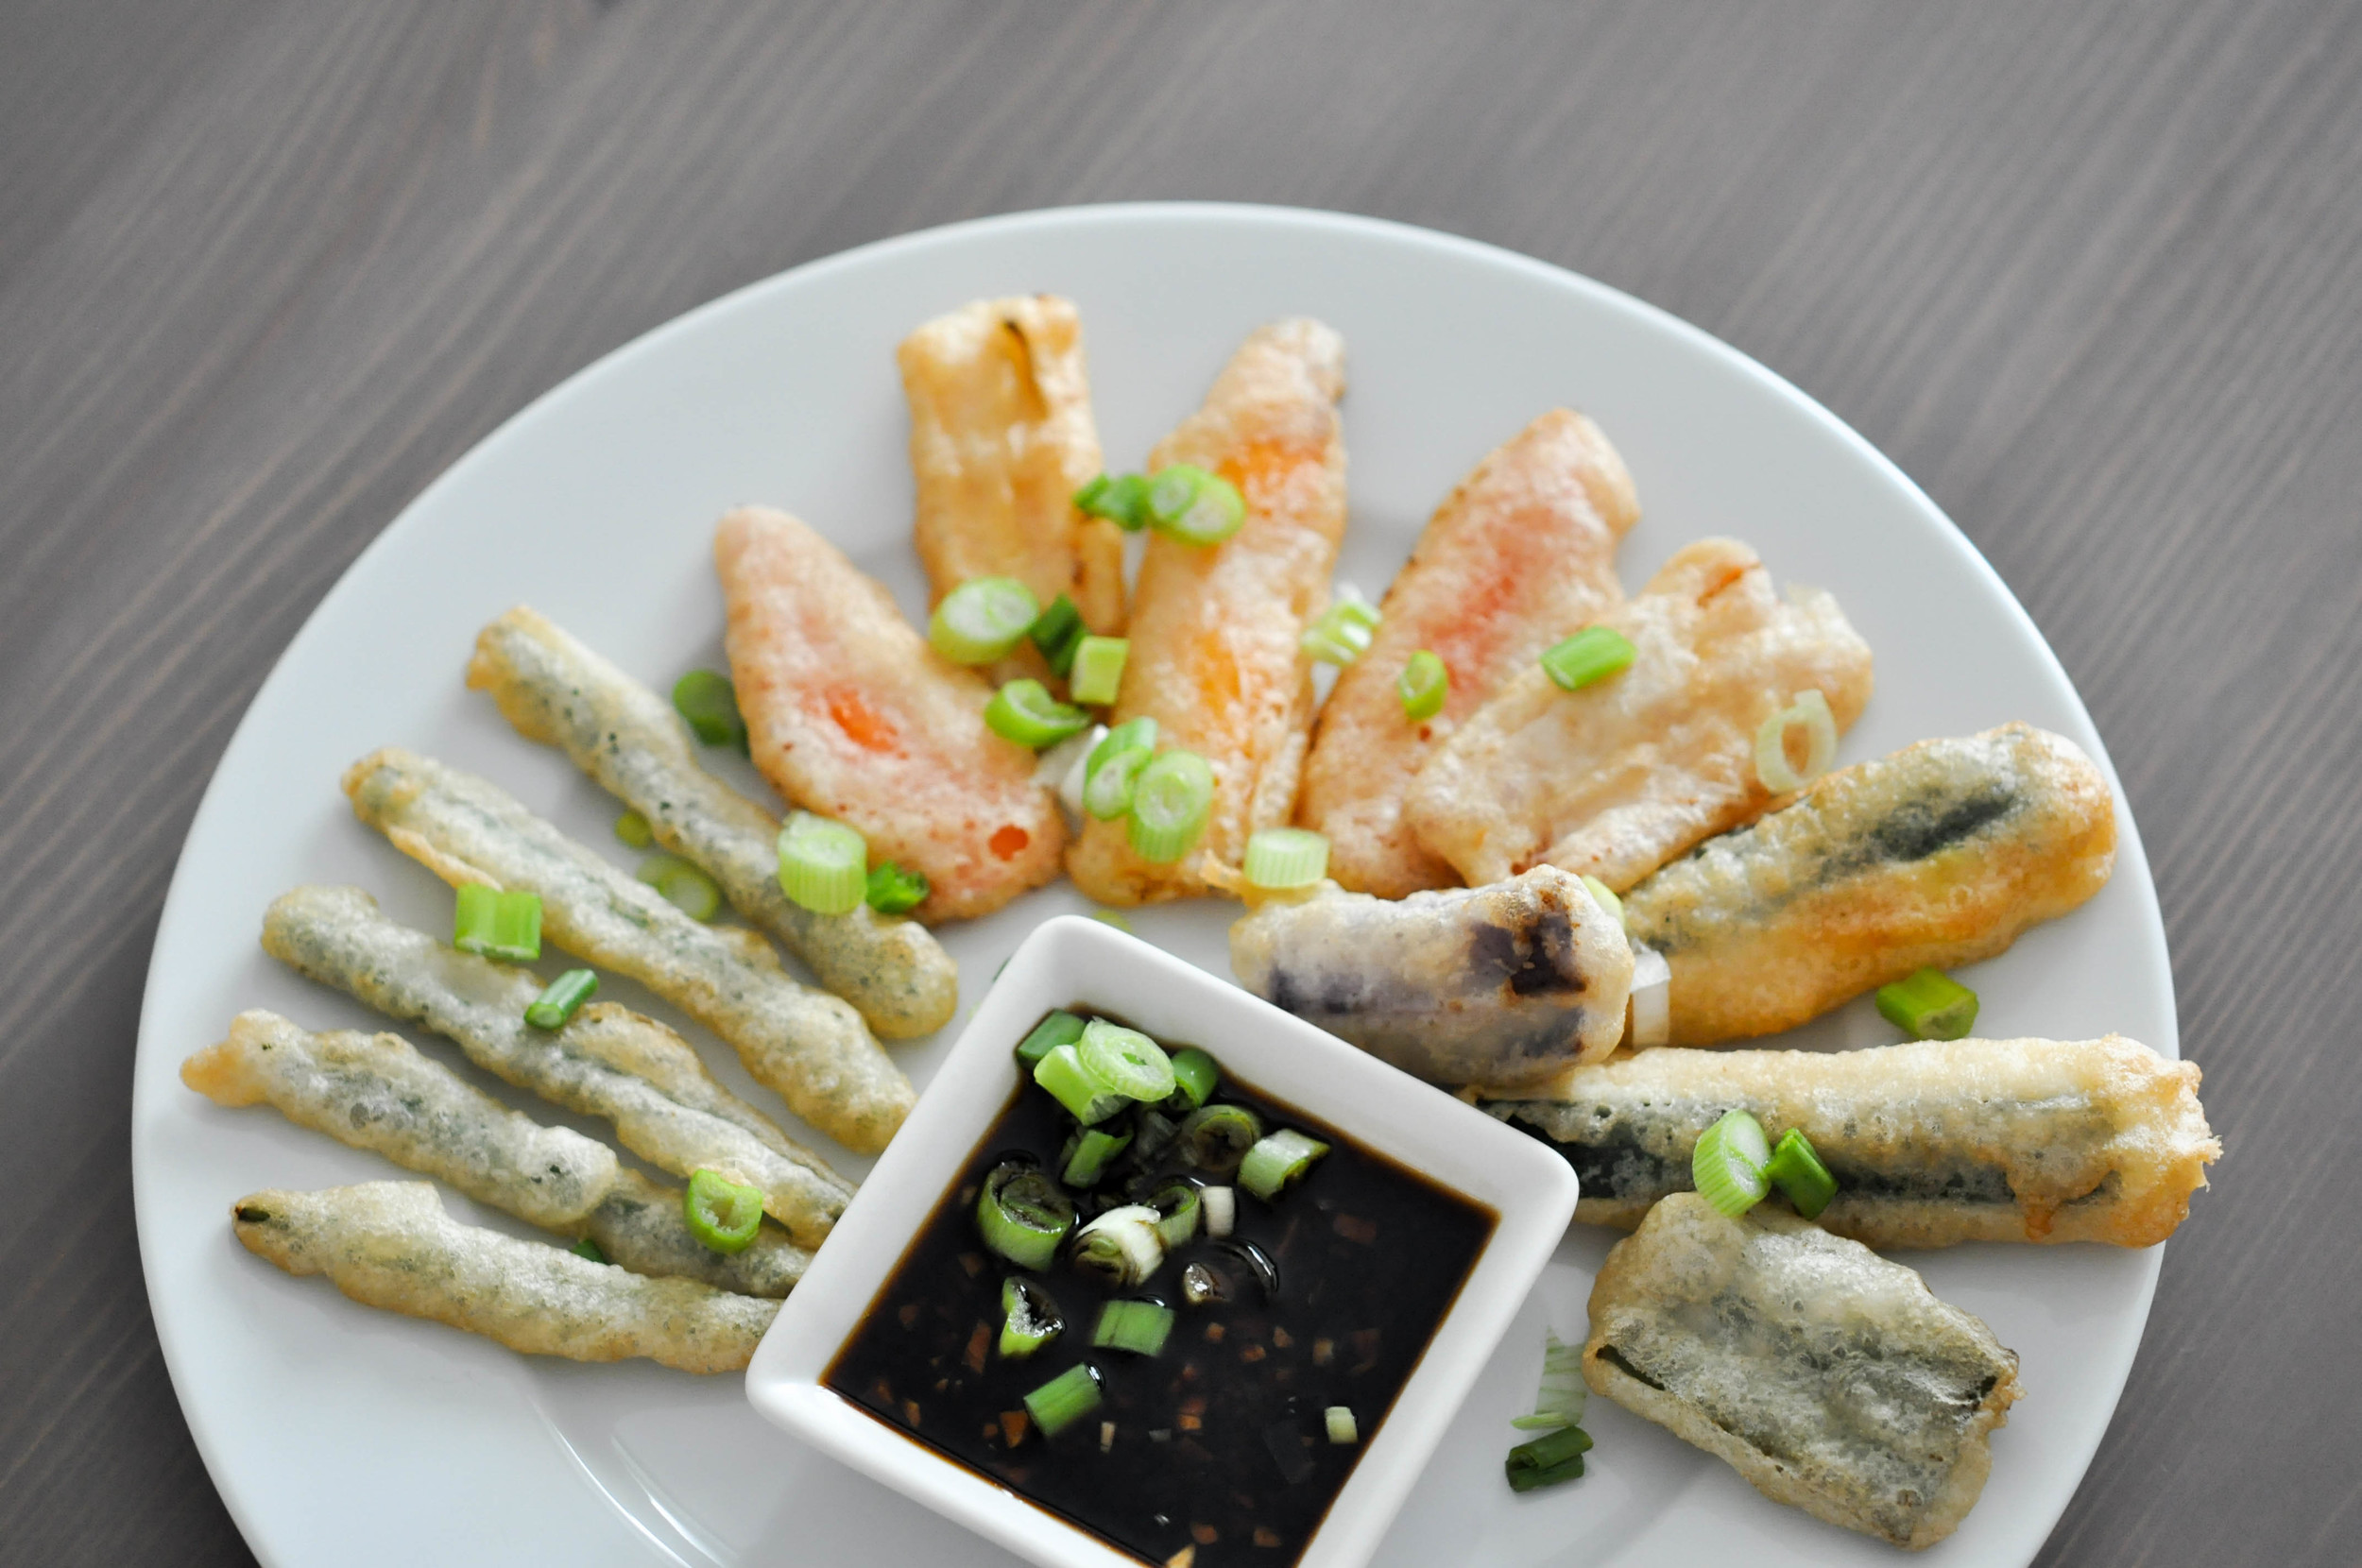 Tempura Vegetables Recipe with a Ginger Soy Sauce   Shiny Happy Bright